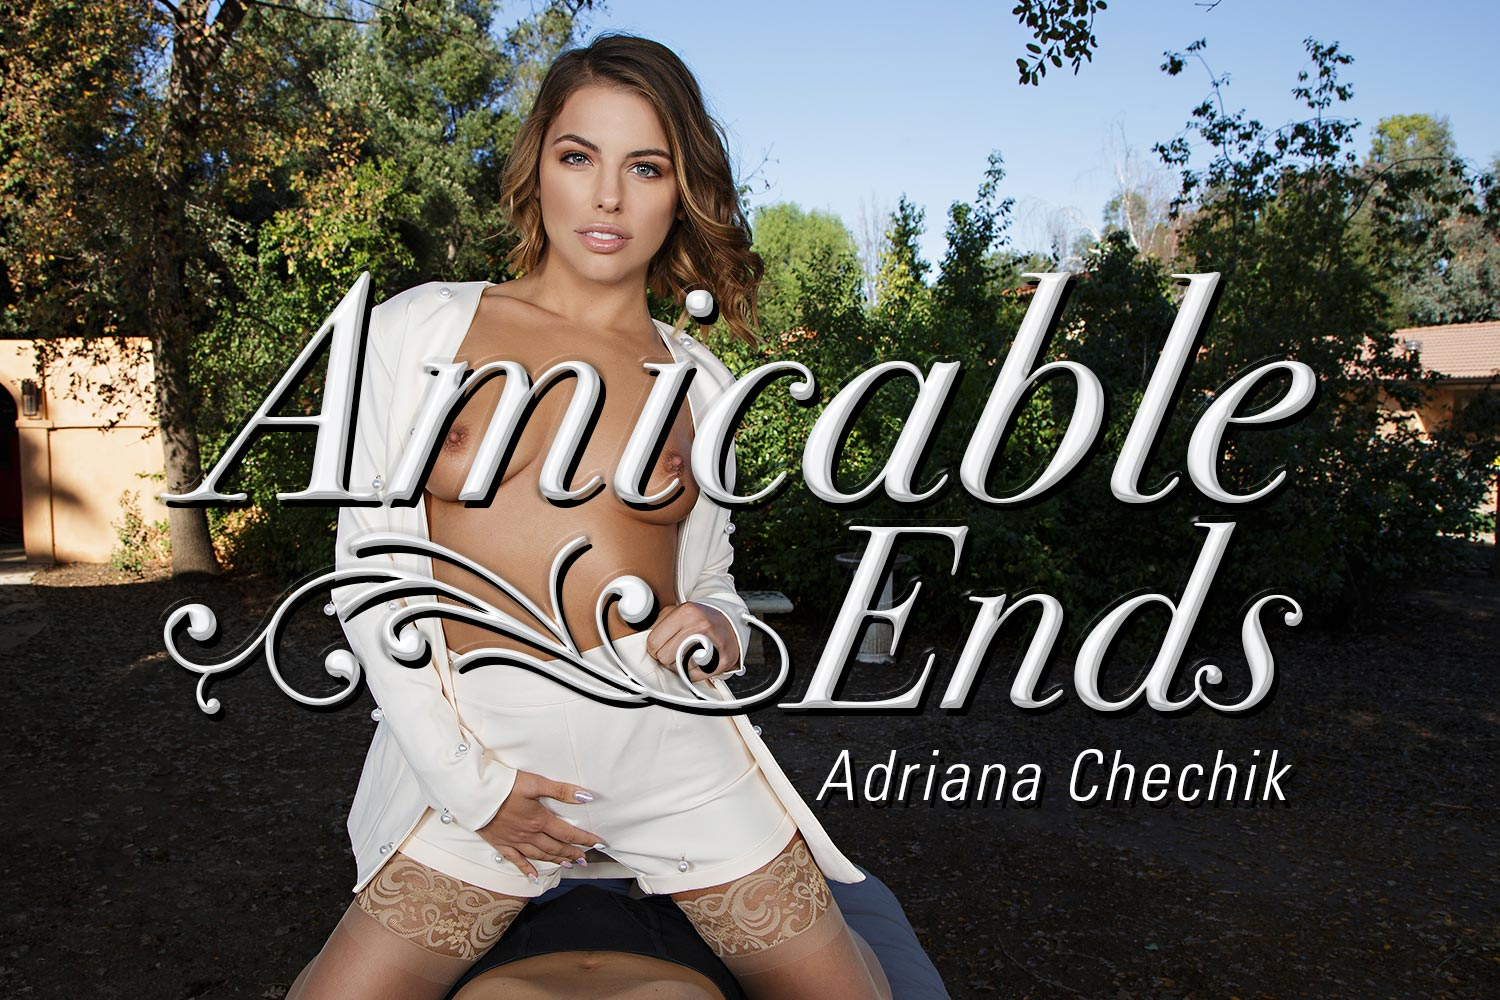 Amicable Ends